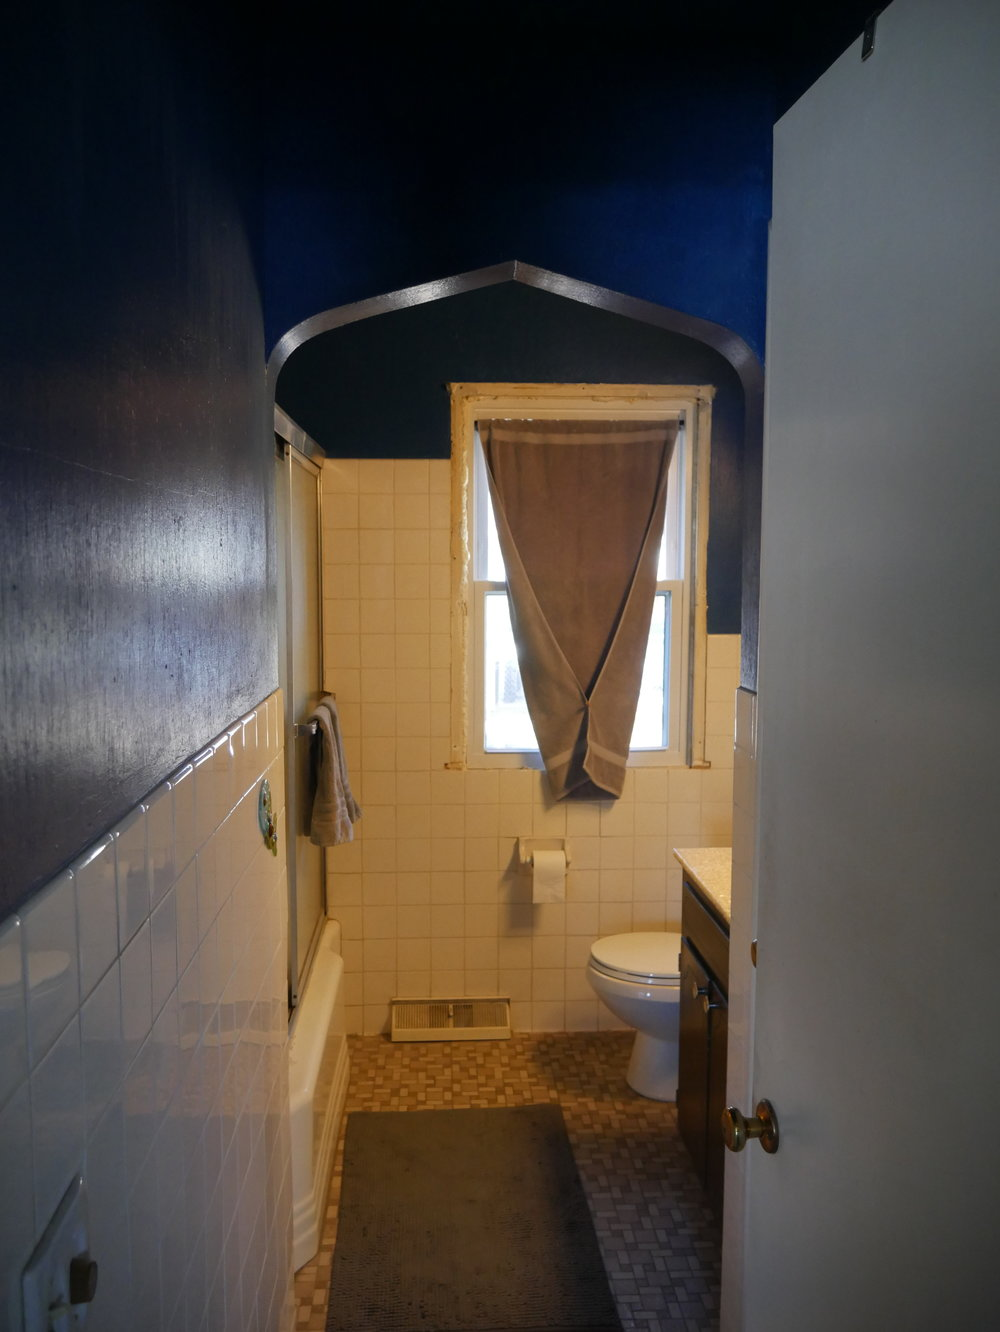 getting rid of that archway made the bathroom feel twice as big!